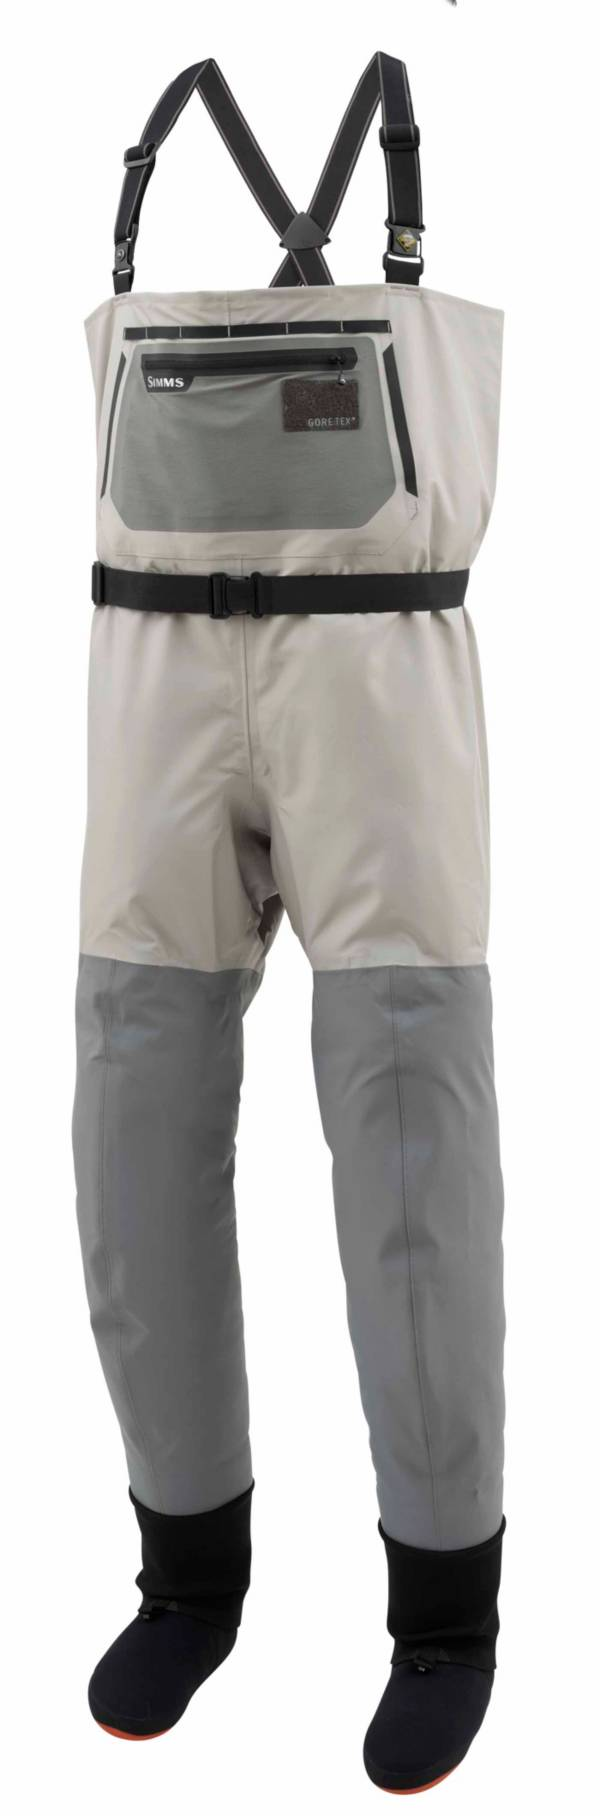 Simms Headwaters Pro Stockingfoot Chest Waders product image